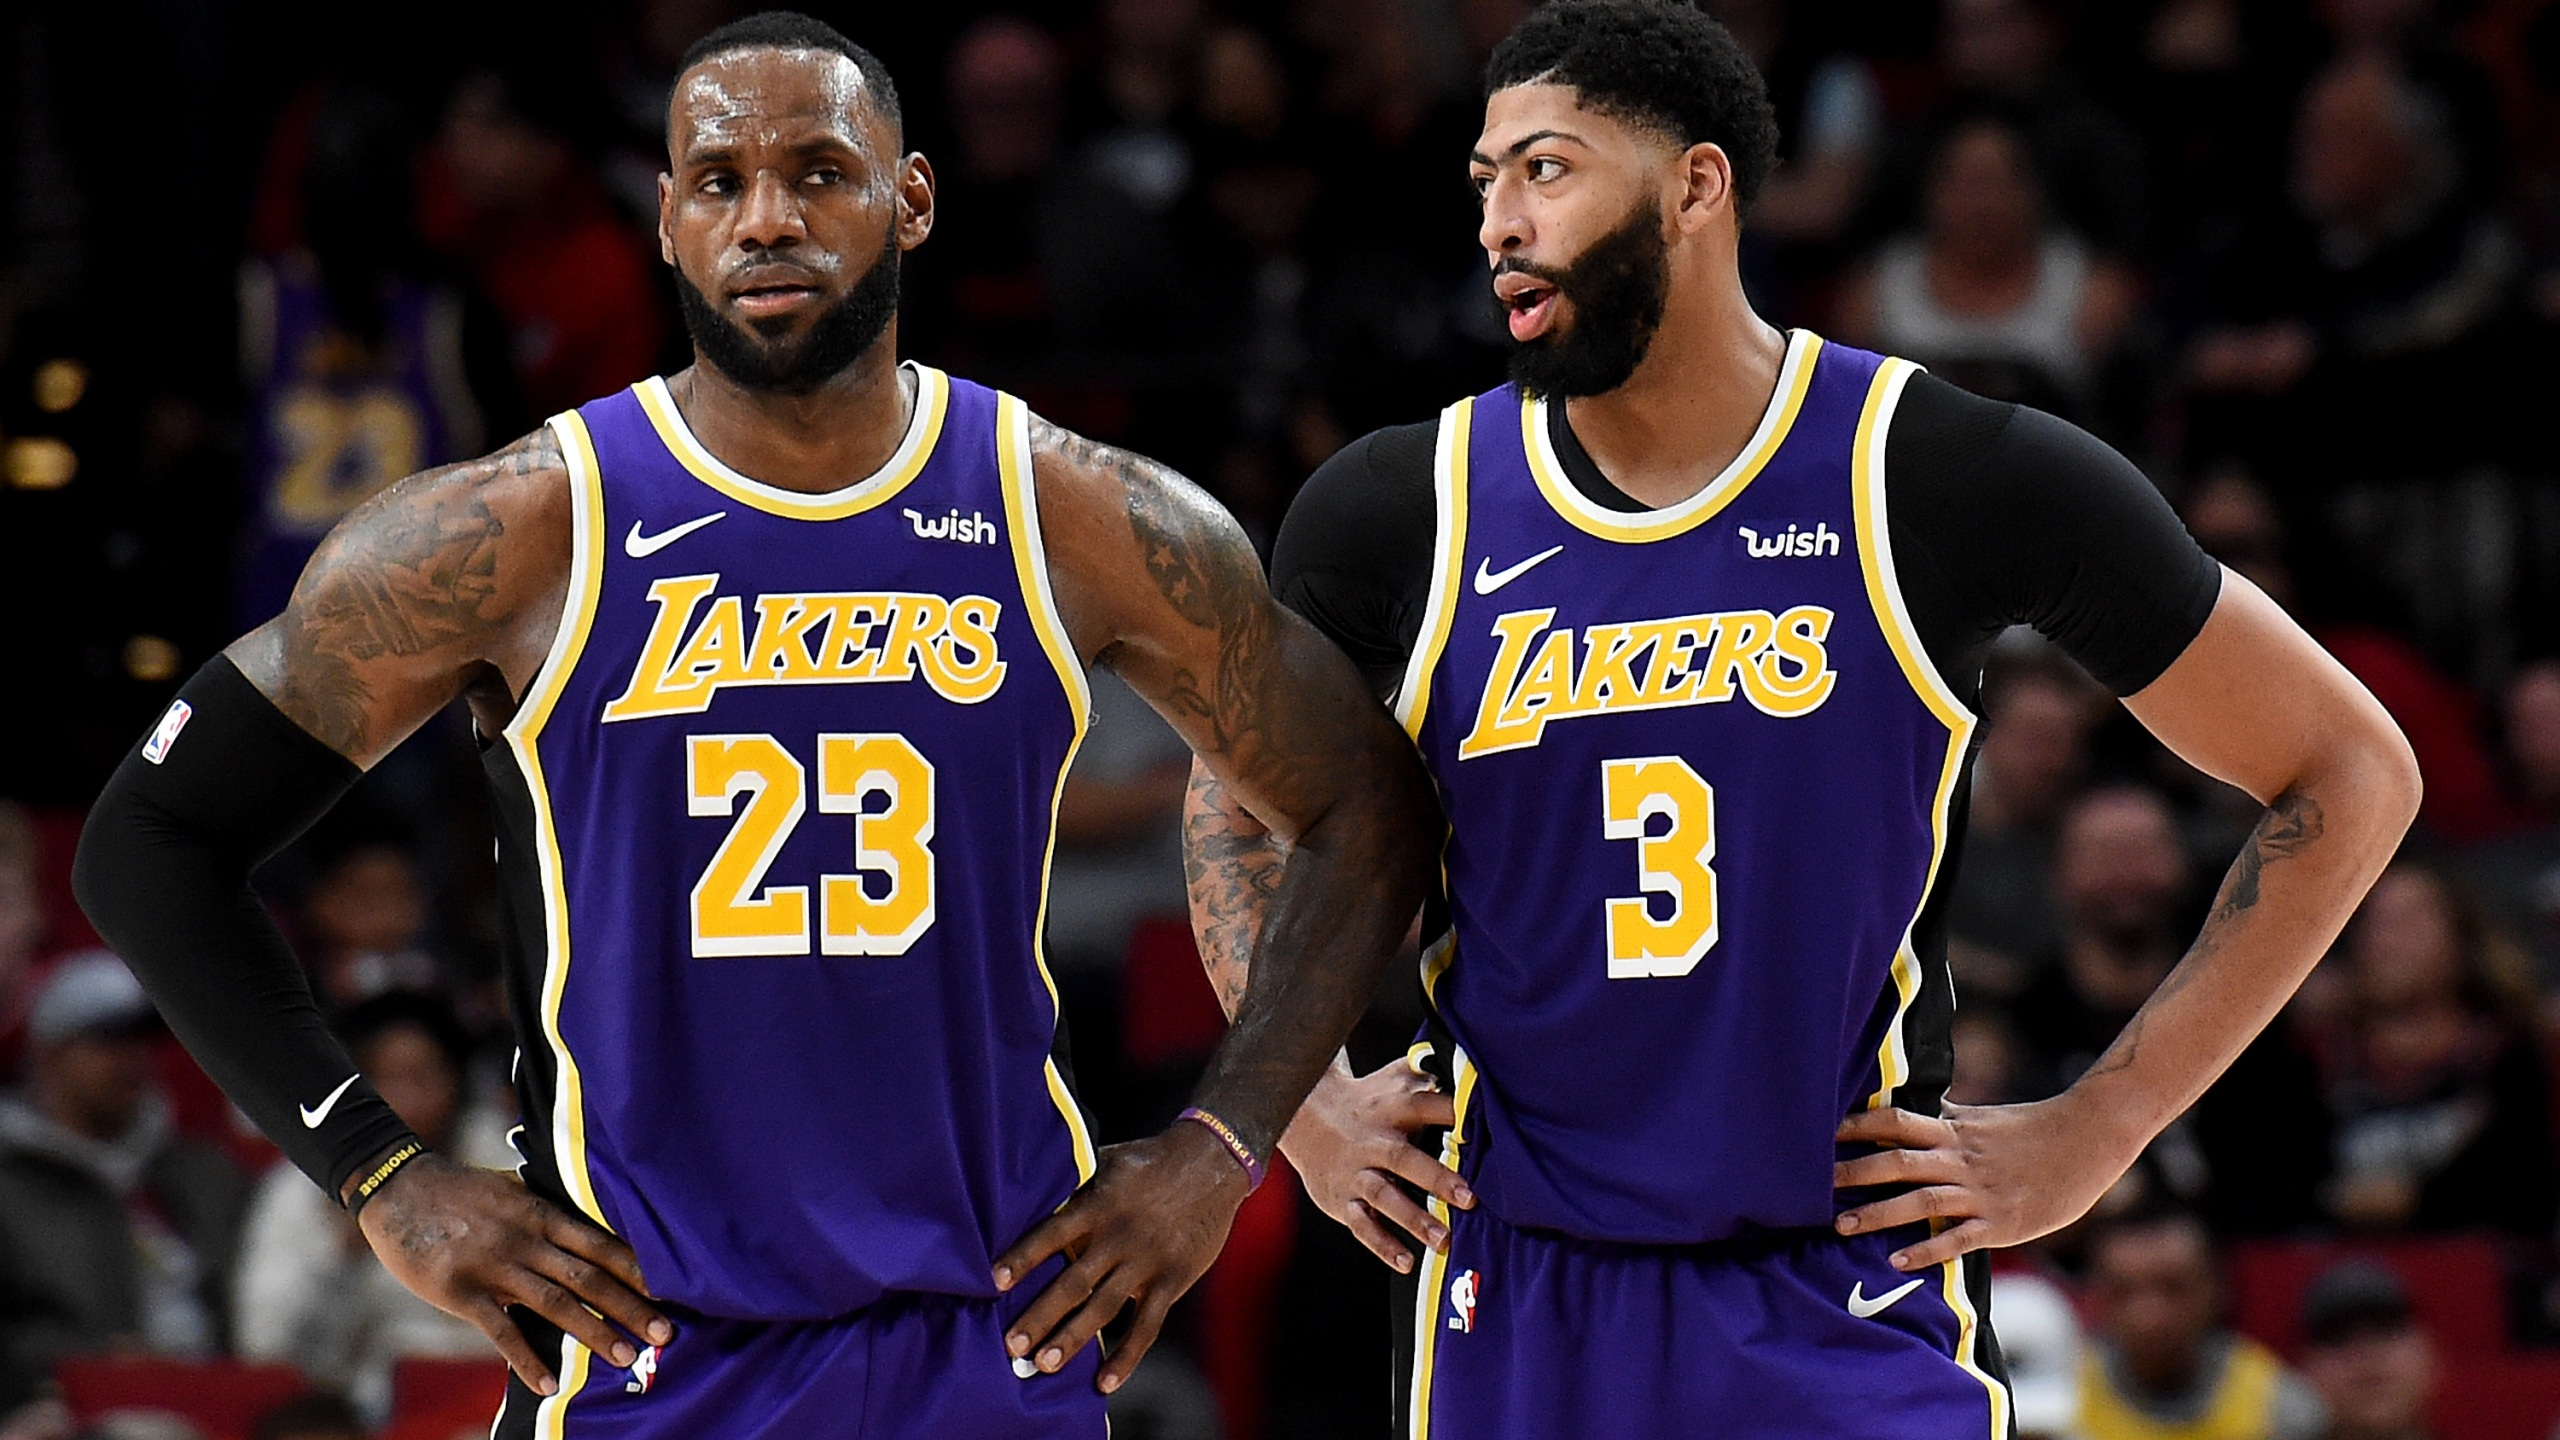 LeBron James and Anthony Davis of the Los Angeles Lakers speak during a time out in the second half of the game against the Portland Trail Blazers at Moda Center on December 06, 2019. (Steve Dykes/Getty Images)